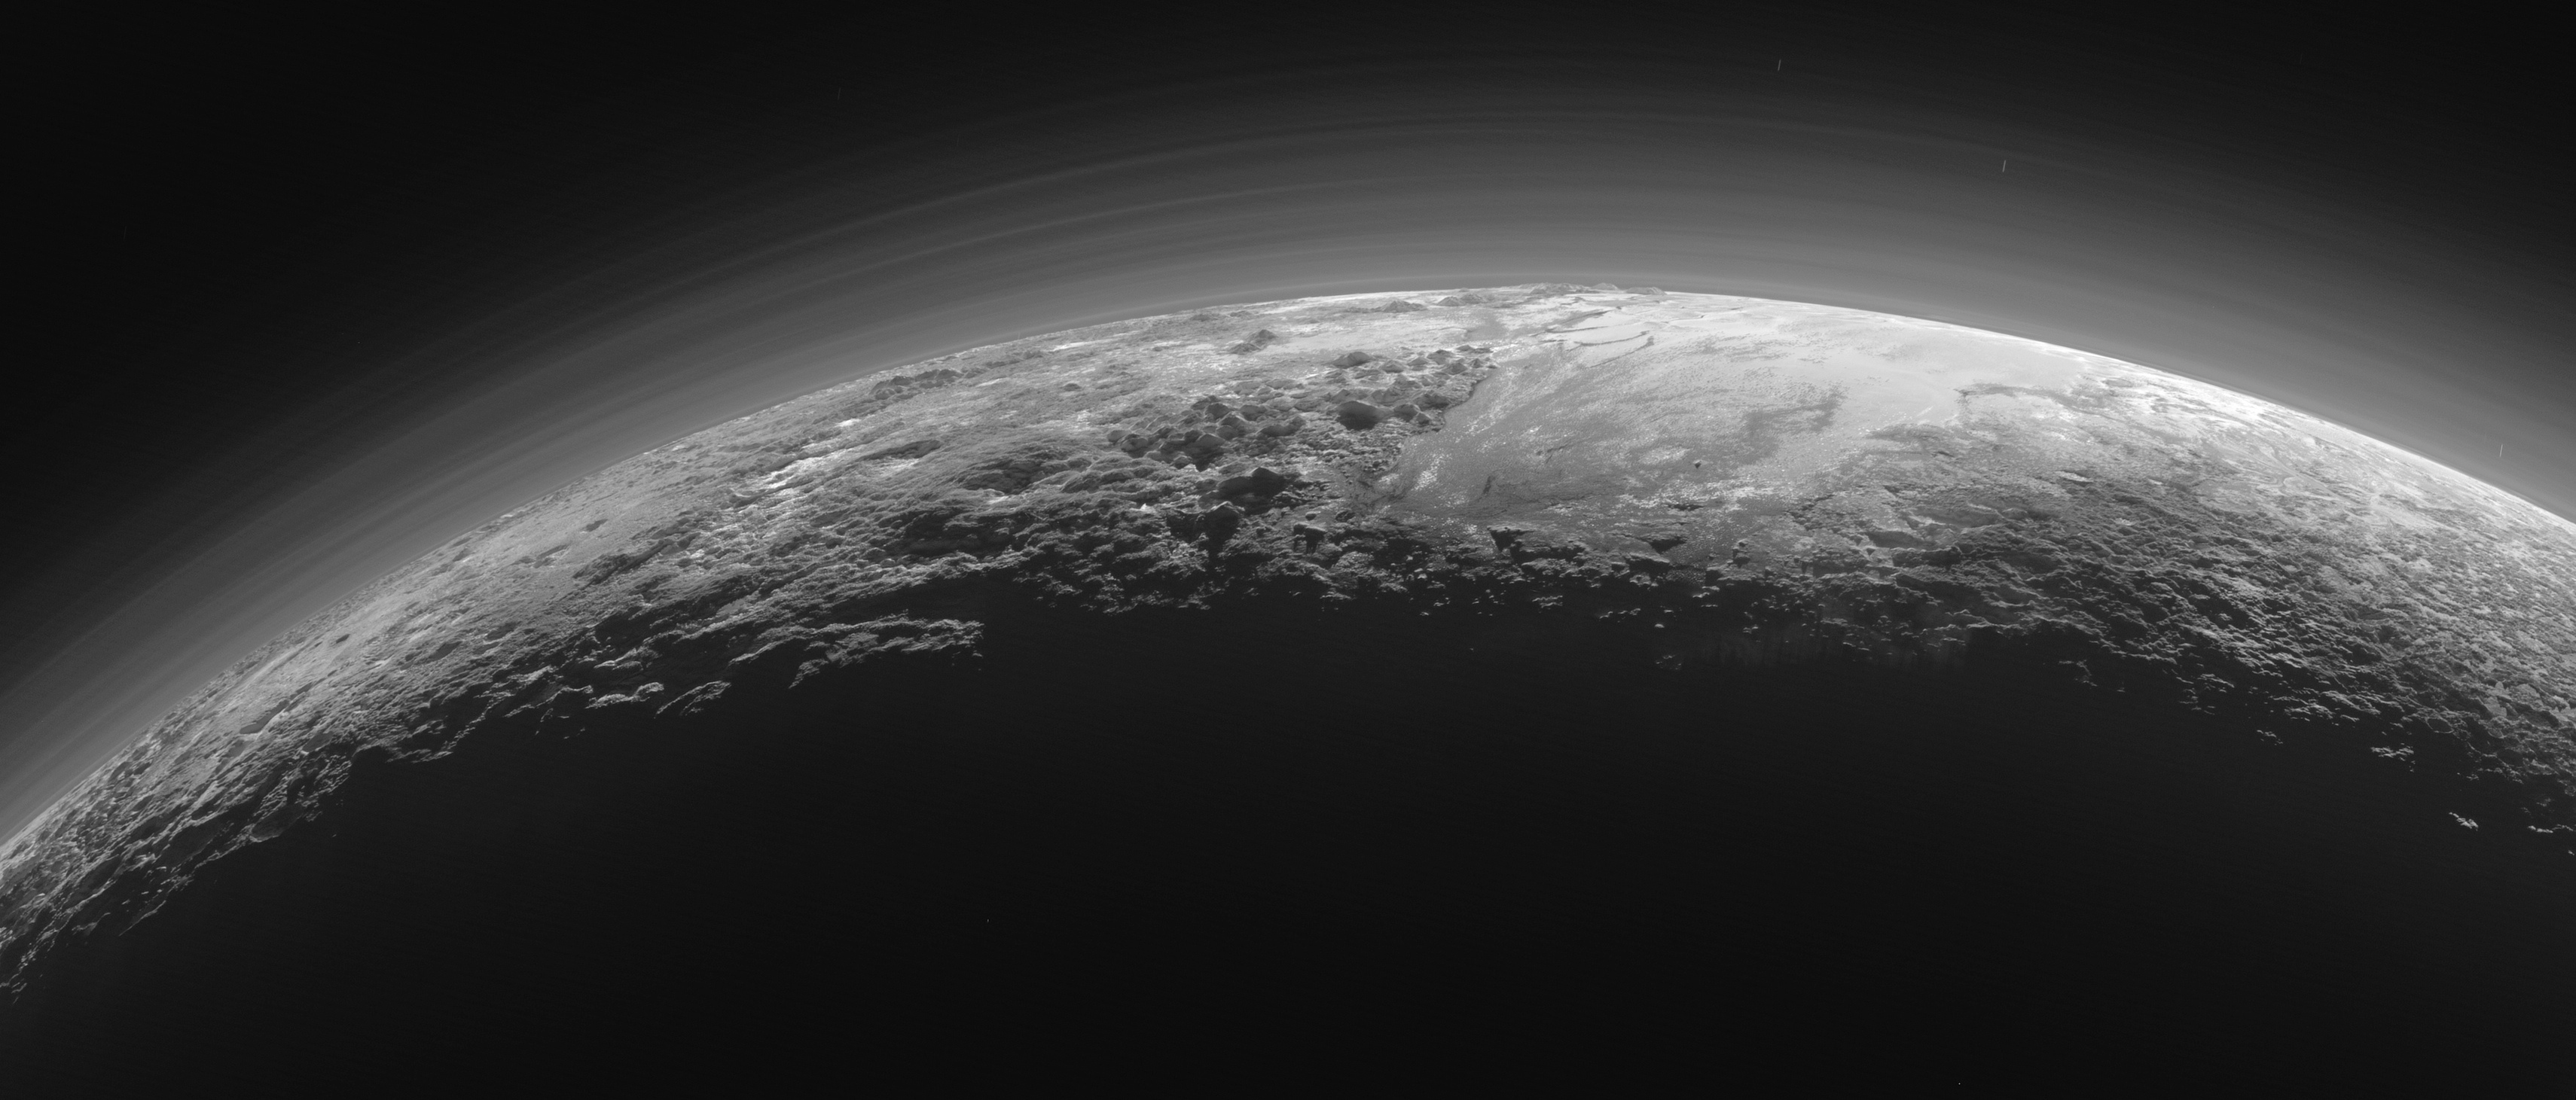 Just 15 minutes after its closest approach to Pluto on July 14, 2015, NASA's New Horizons spacecraft looked back toward the sun and captured this near-sunset view of the rugged, icy mountains and flat ice plains extending to Pluto's horizon. The smooth expanse of the informally named icy plain Sputnik Planum (right) is flanked to the west (left) by rugged mountains up to 11,000 feet (3,500 meters) high, including the informally named Norgay Montes in the foreground and Hillary Montes on the skyline. To the right, east of Sputnik, rougher terrain is cut by apparent glaciers. The backlighting highlights more than a dozen layers of haze in Pluto's tenuous but distended atmosphere. The image was taken from a distance of 11,000 miles (18,000 kilometers) to Pluto; the scene is 780 miles (1,250 kilometers) wide. Credit: NASA/Johns Hopkins University Applied Physics Laboratory/Southwest Research Institute